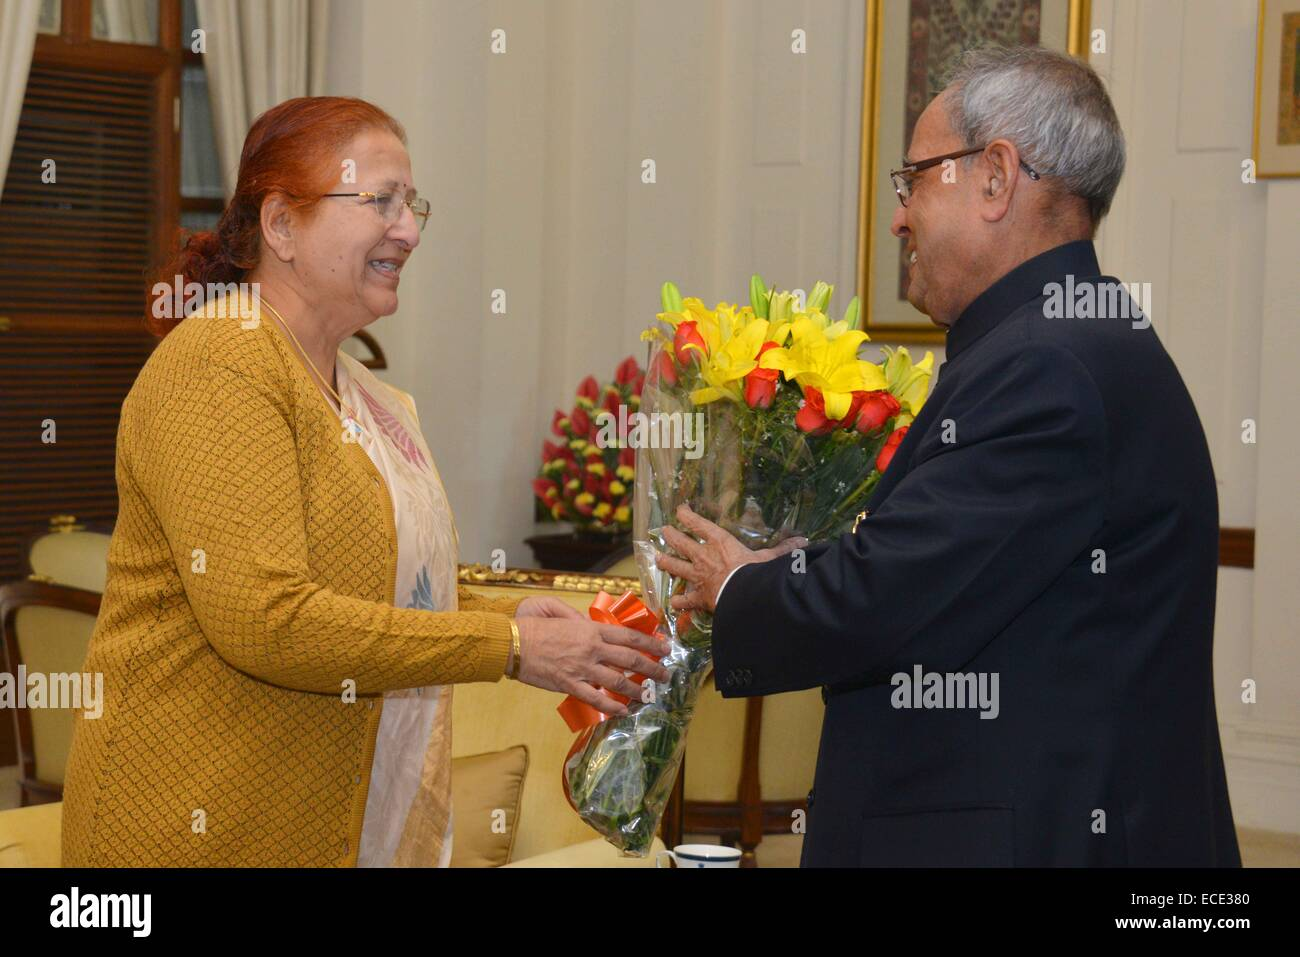 New delhi india 11th dec 2014 the president of india shri new delhi india 11th dec 2014 the president of india shri pranab mukherjee receives greetings from vvips dignitaries on the occasion of his birthday kristyandbryce Choice Image